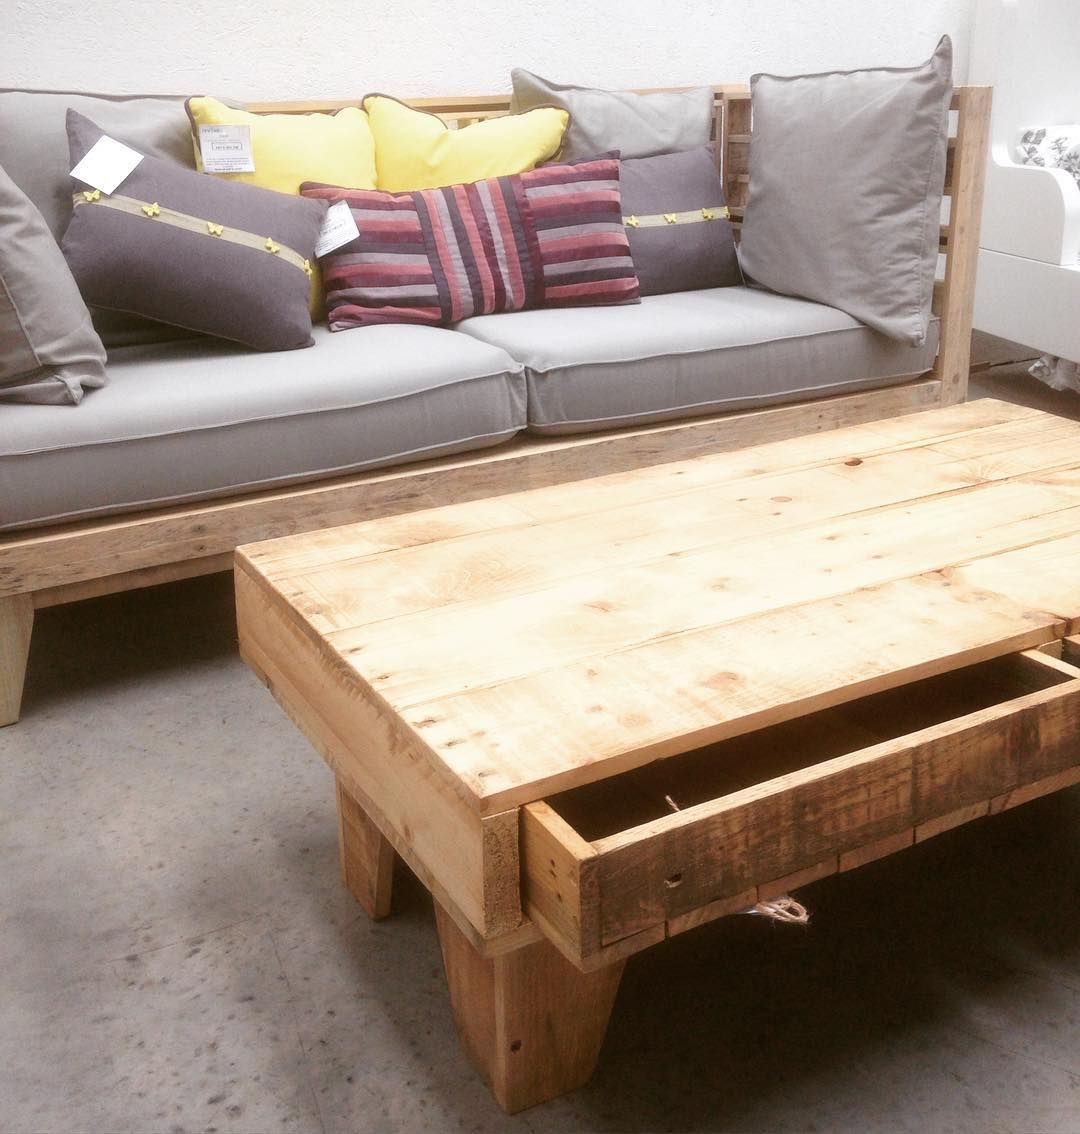 simple home pallet furniture ideas that you happy to adopt ... - Mobili Pallet Interior Design